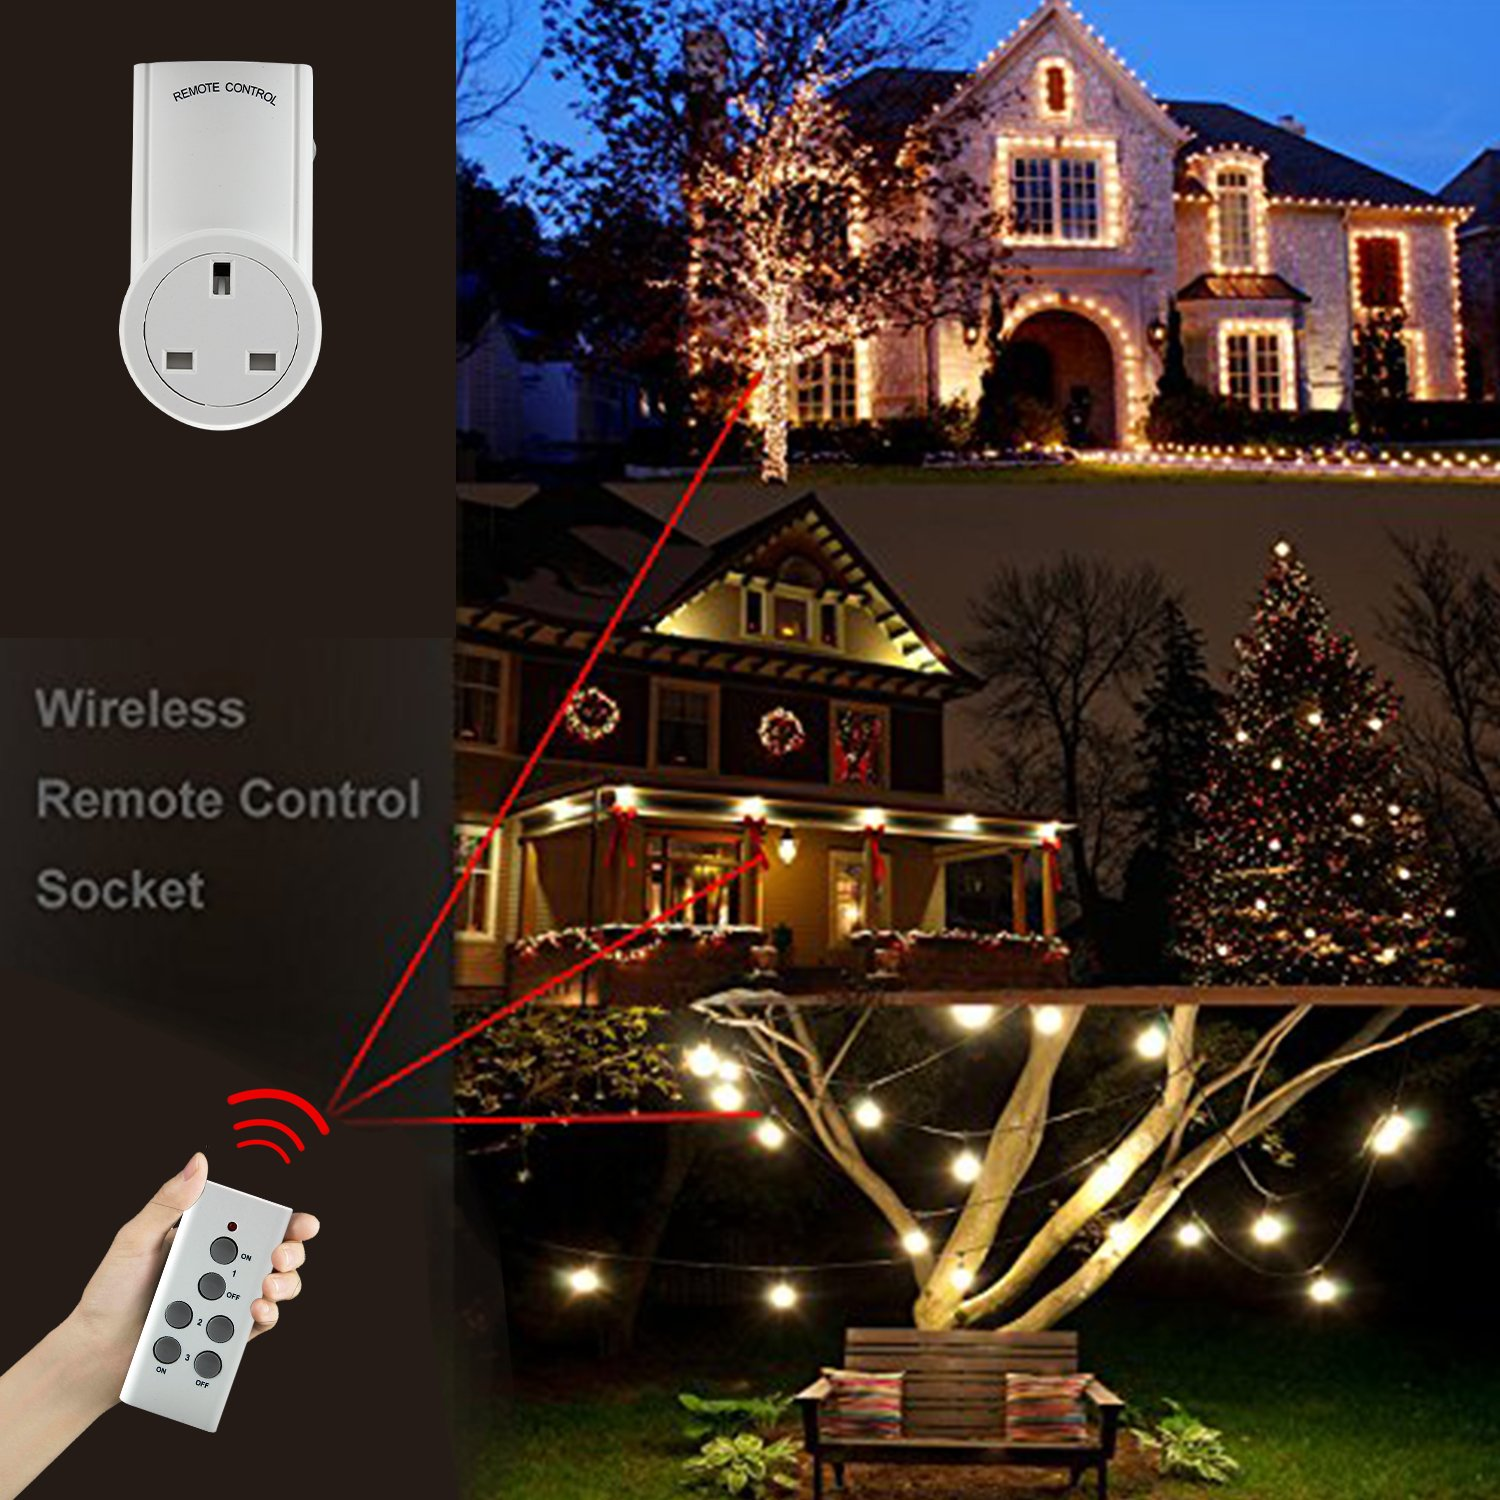 Discoball Wireless Remote Control Sockets Household Appliances /& Smart Home Electrical Outlet Light Switch Plug Cover 30m//100ft Operating Range